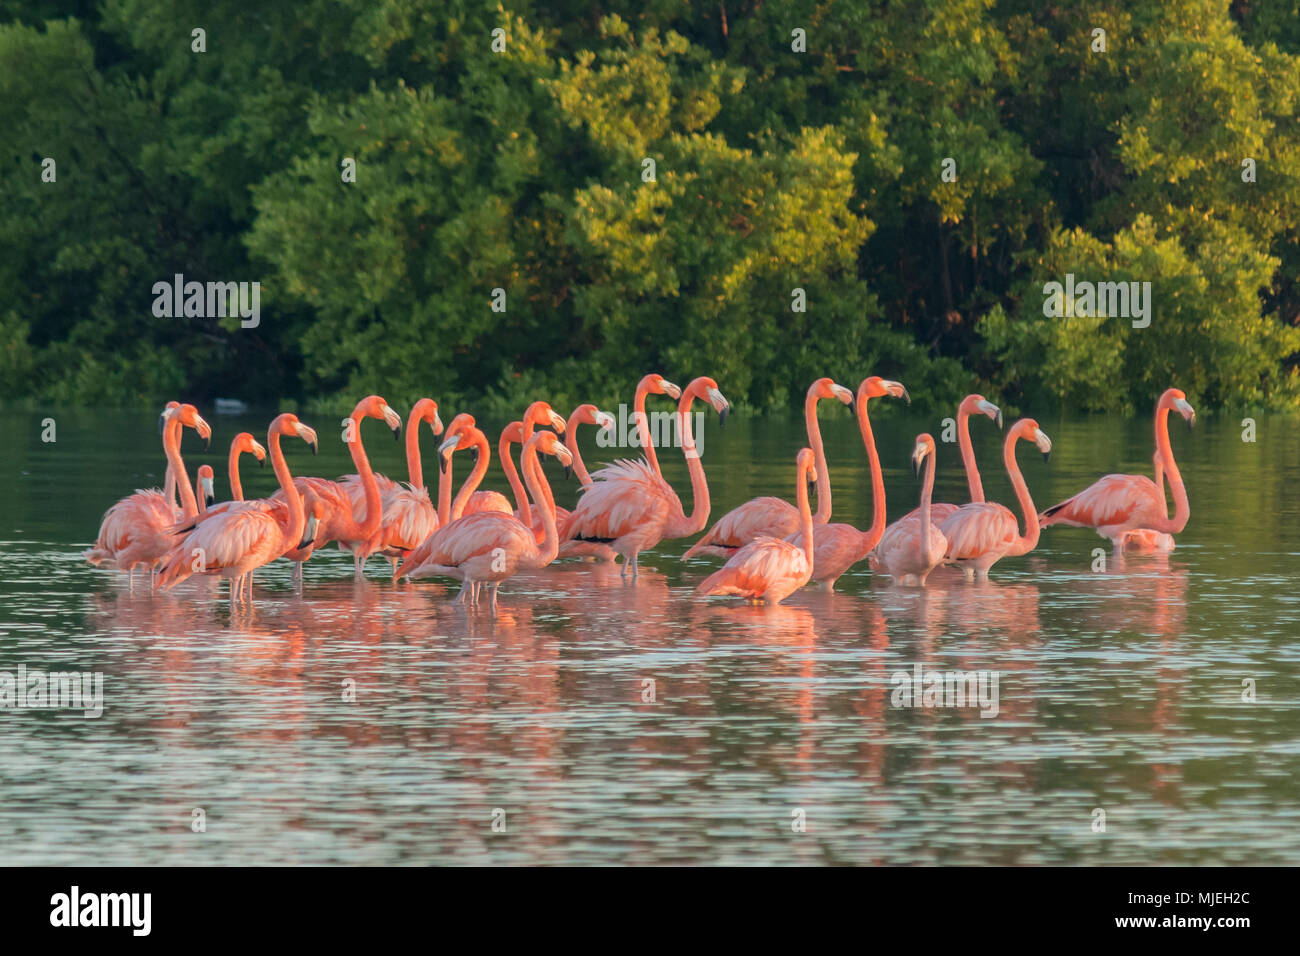 Pink flamingos family at dawn. Pink flamingoes gather at dawn before setting off to start their day in the river - Stock Image